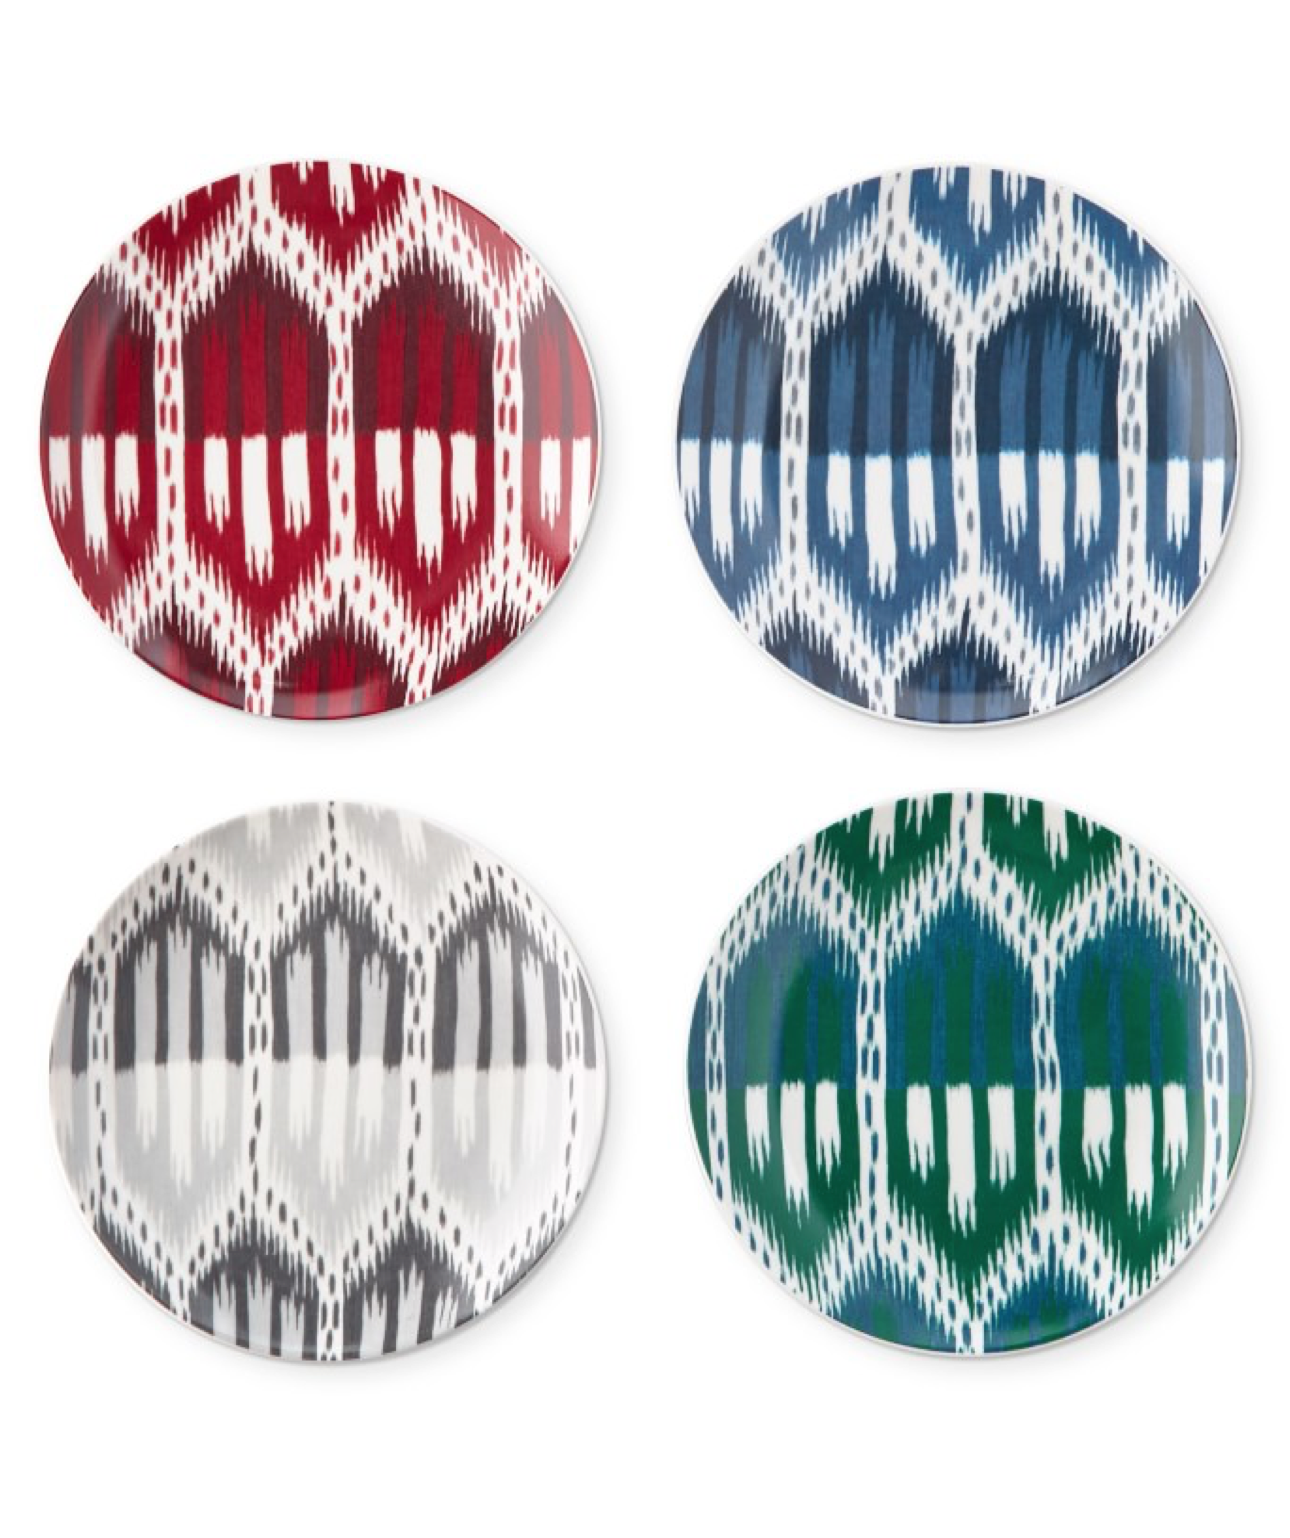 Ikat Inspired Plates